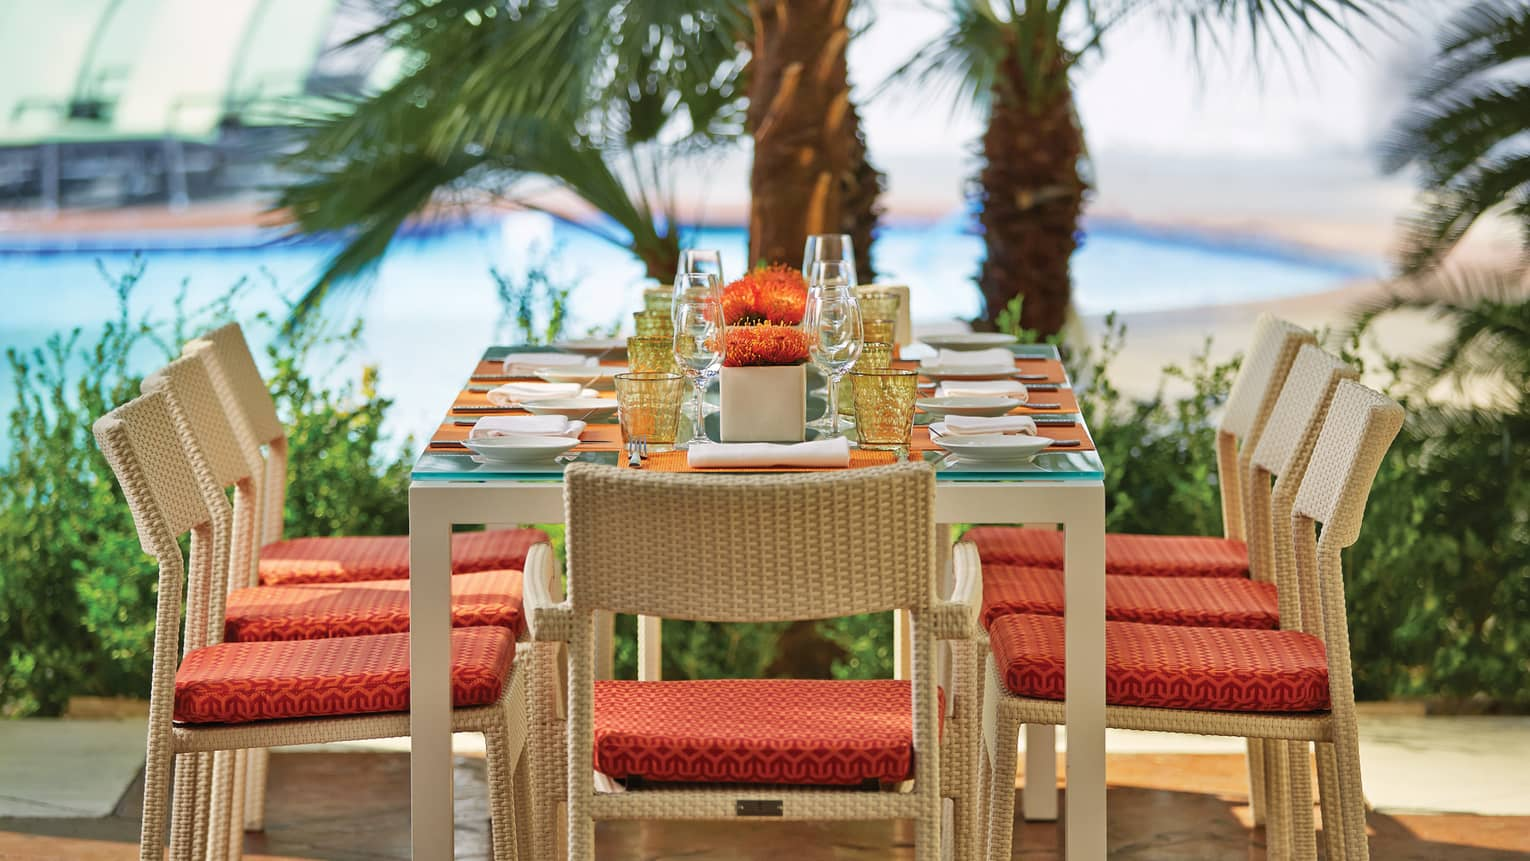 Veranda Restaurant patio dining table, chairs with red cushions, palms in background